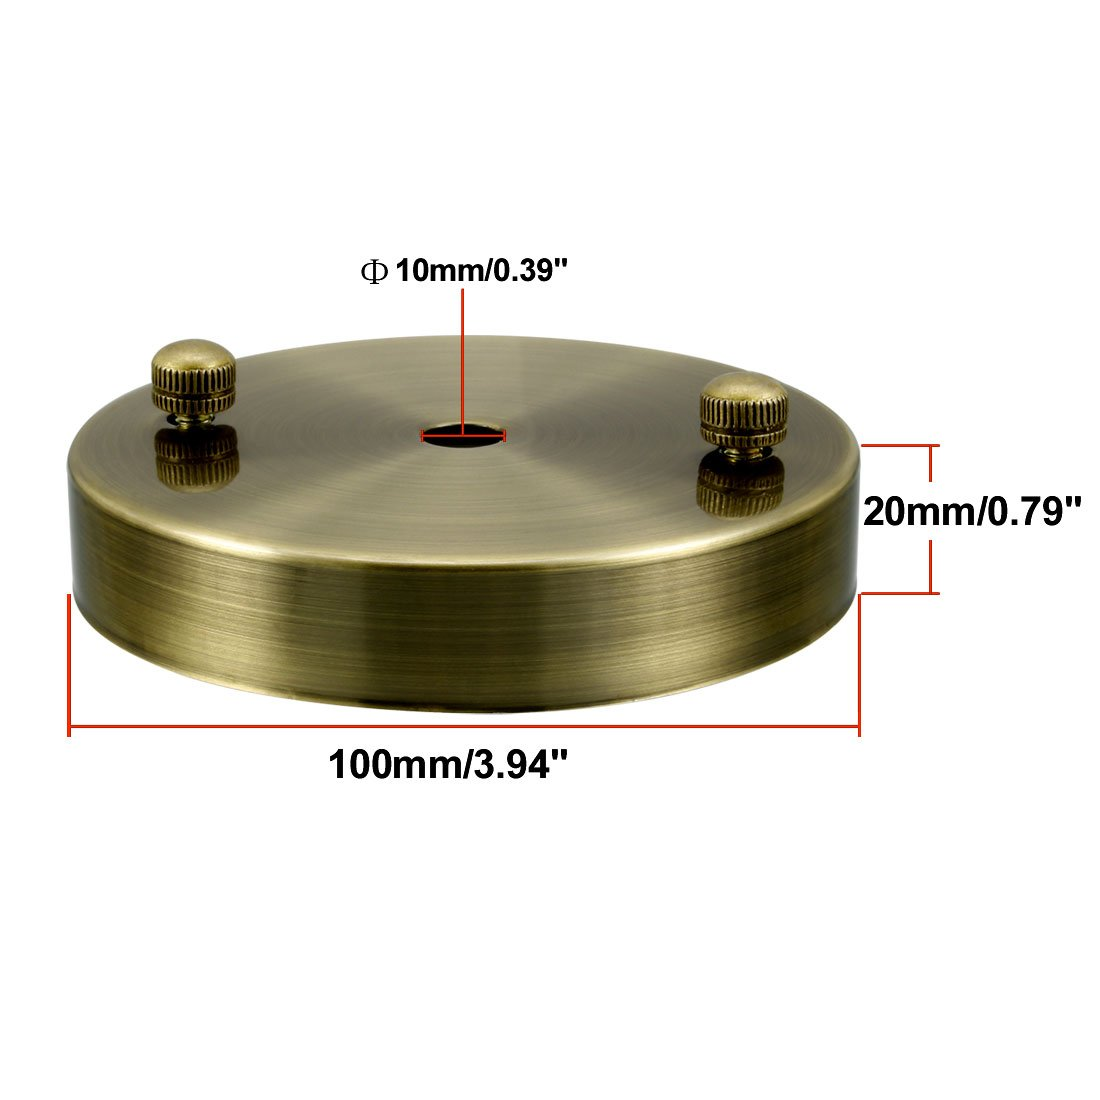 uxcell Retro Ceiling Light Plate Pointed Base Chassis Disc Pendant Accessories 100mmx17mm Bronze Tone w Screw a18032300ux0144